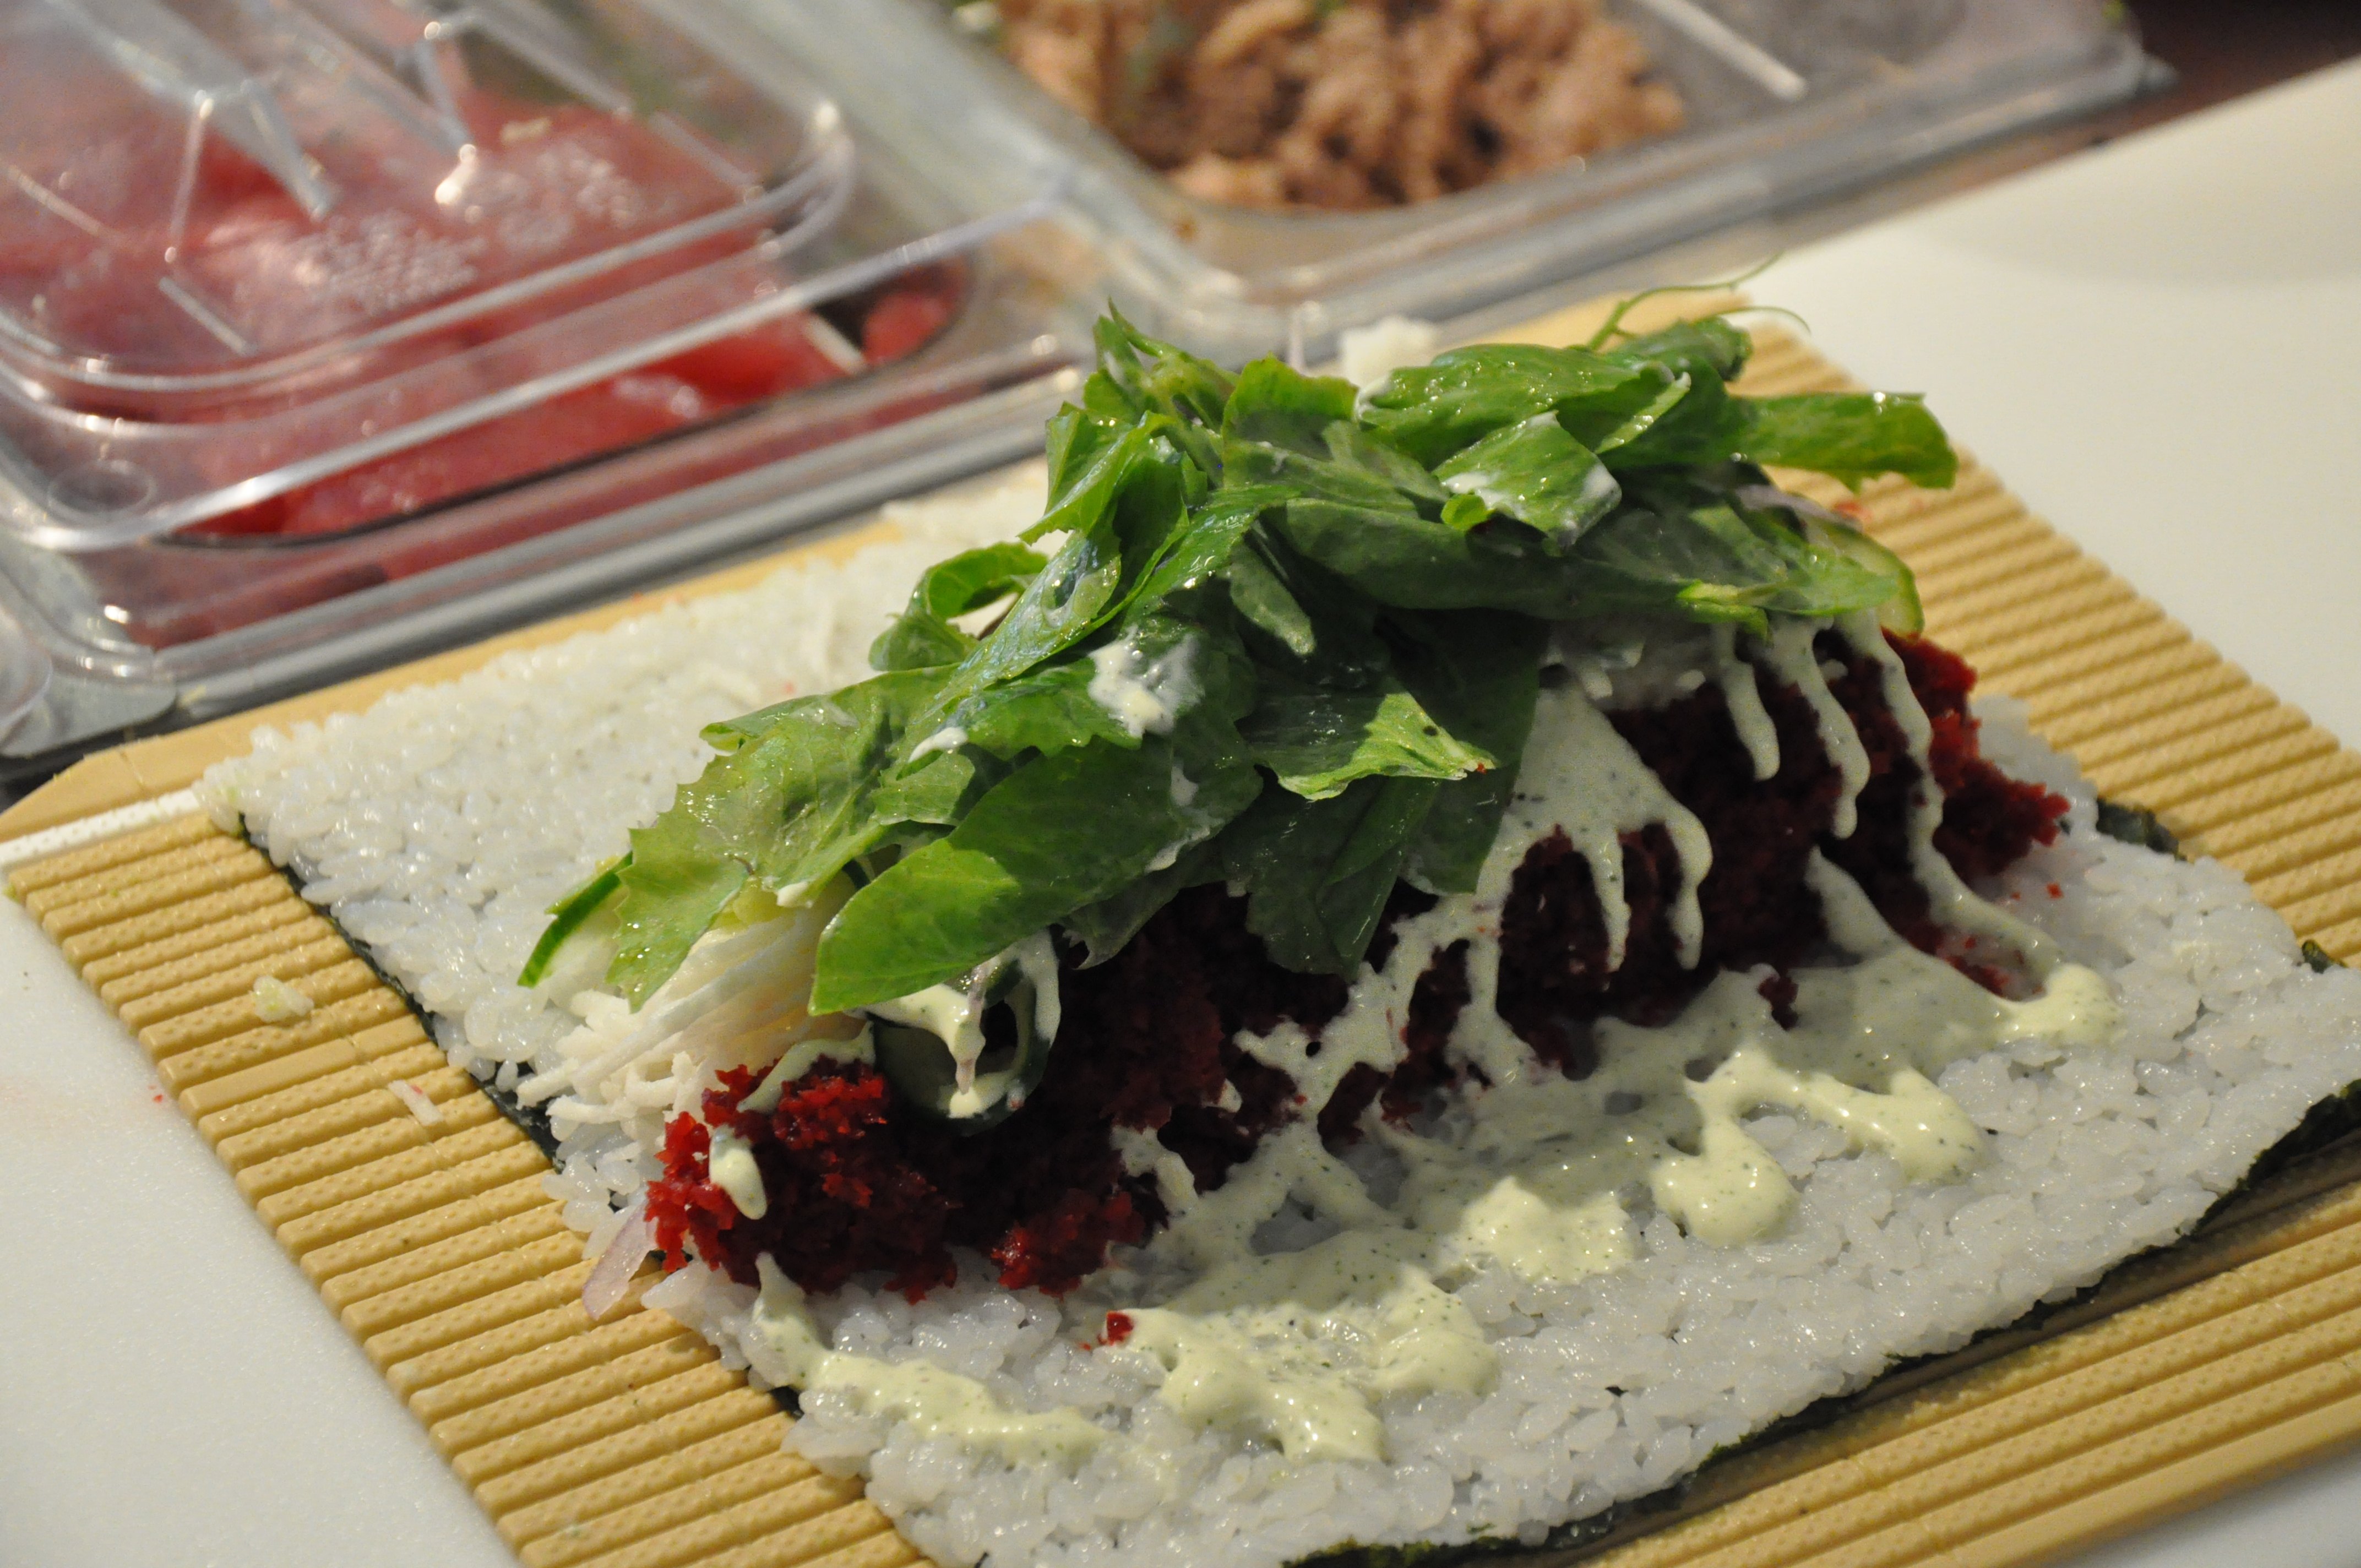 Burrito-sized sushi rolls: The latest lunch craze to hit D.C.